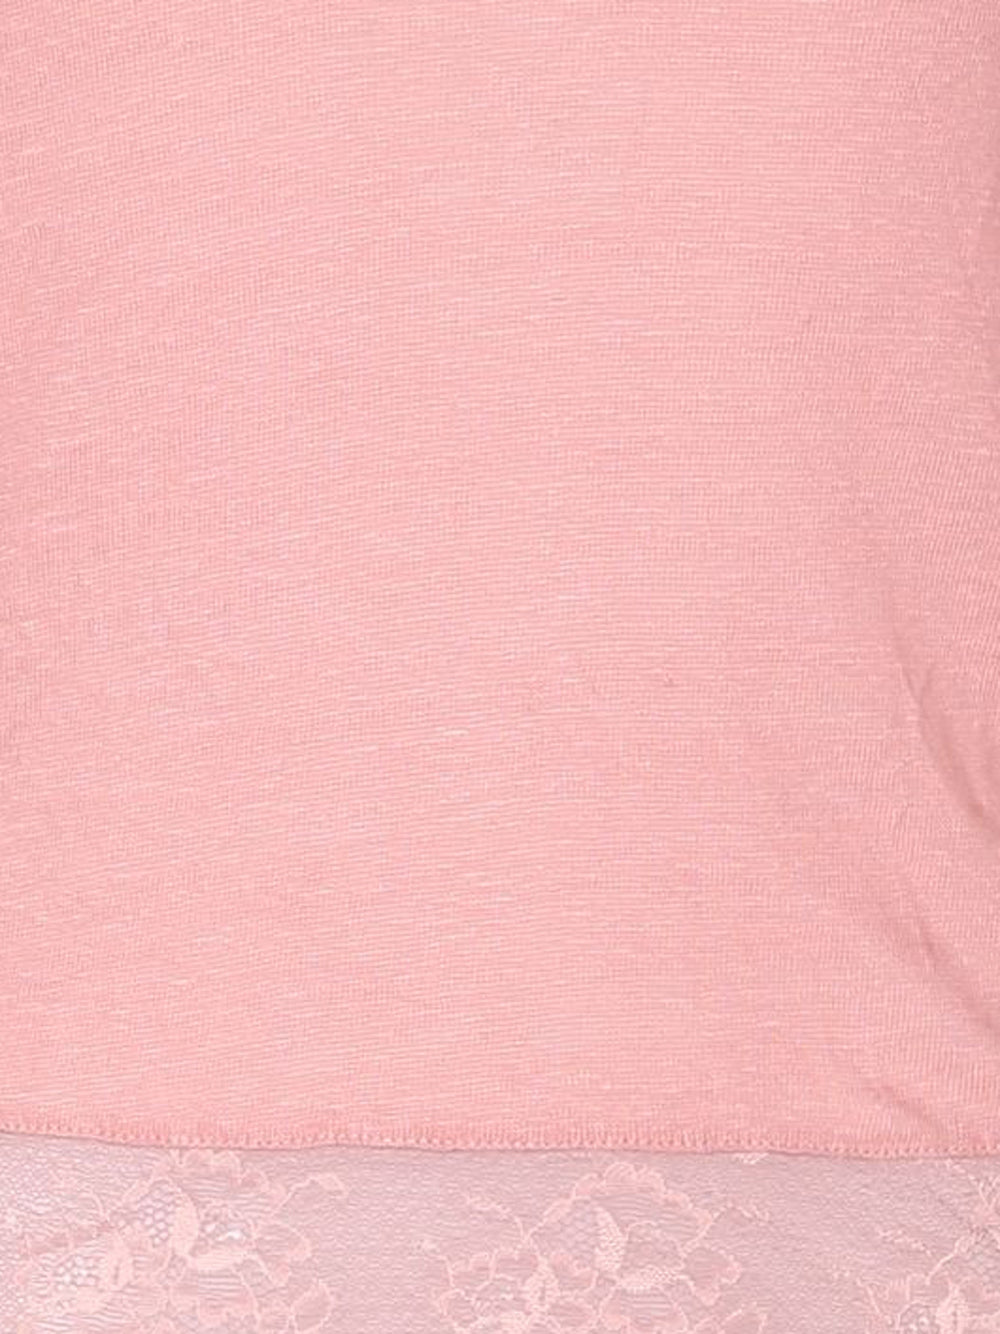 Detail photo of Preloved Naf Naf Pink Woman's sleeveless top - size 6/XS